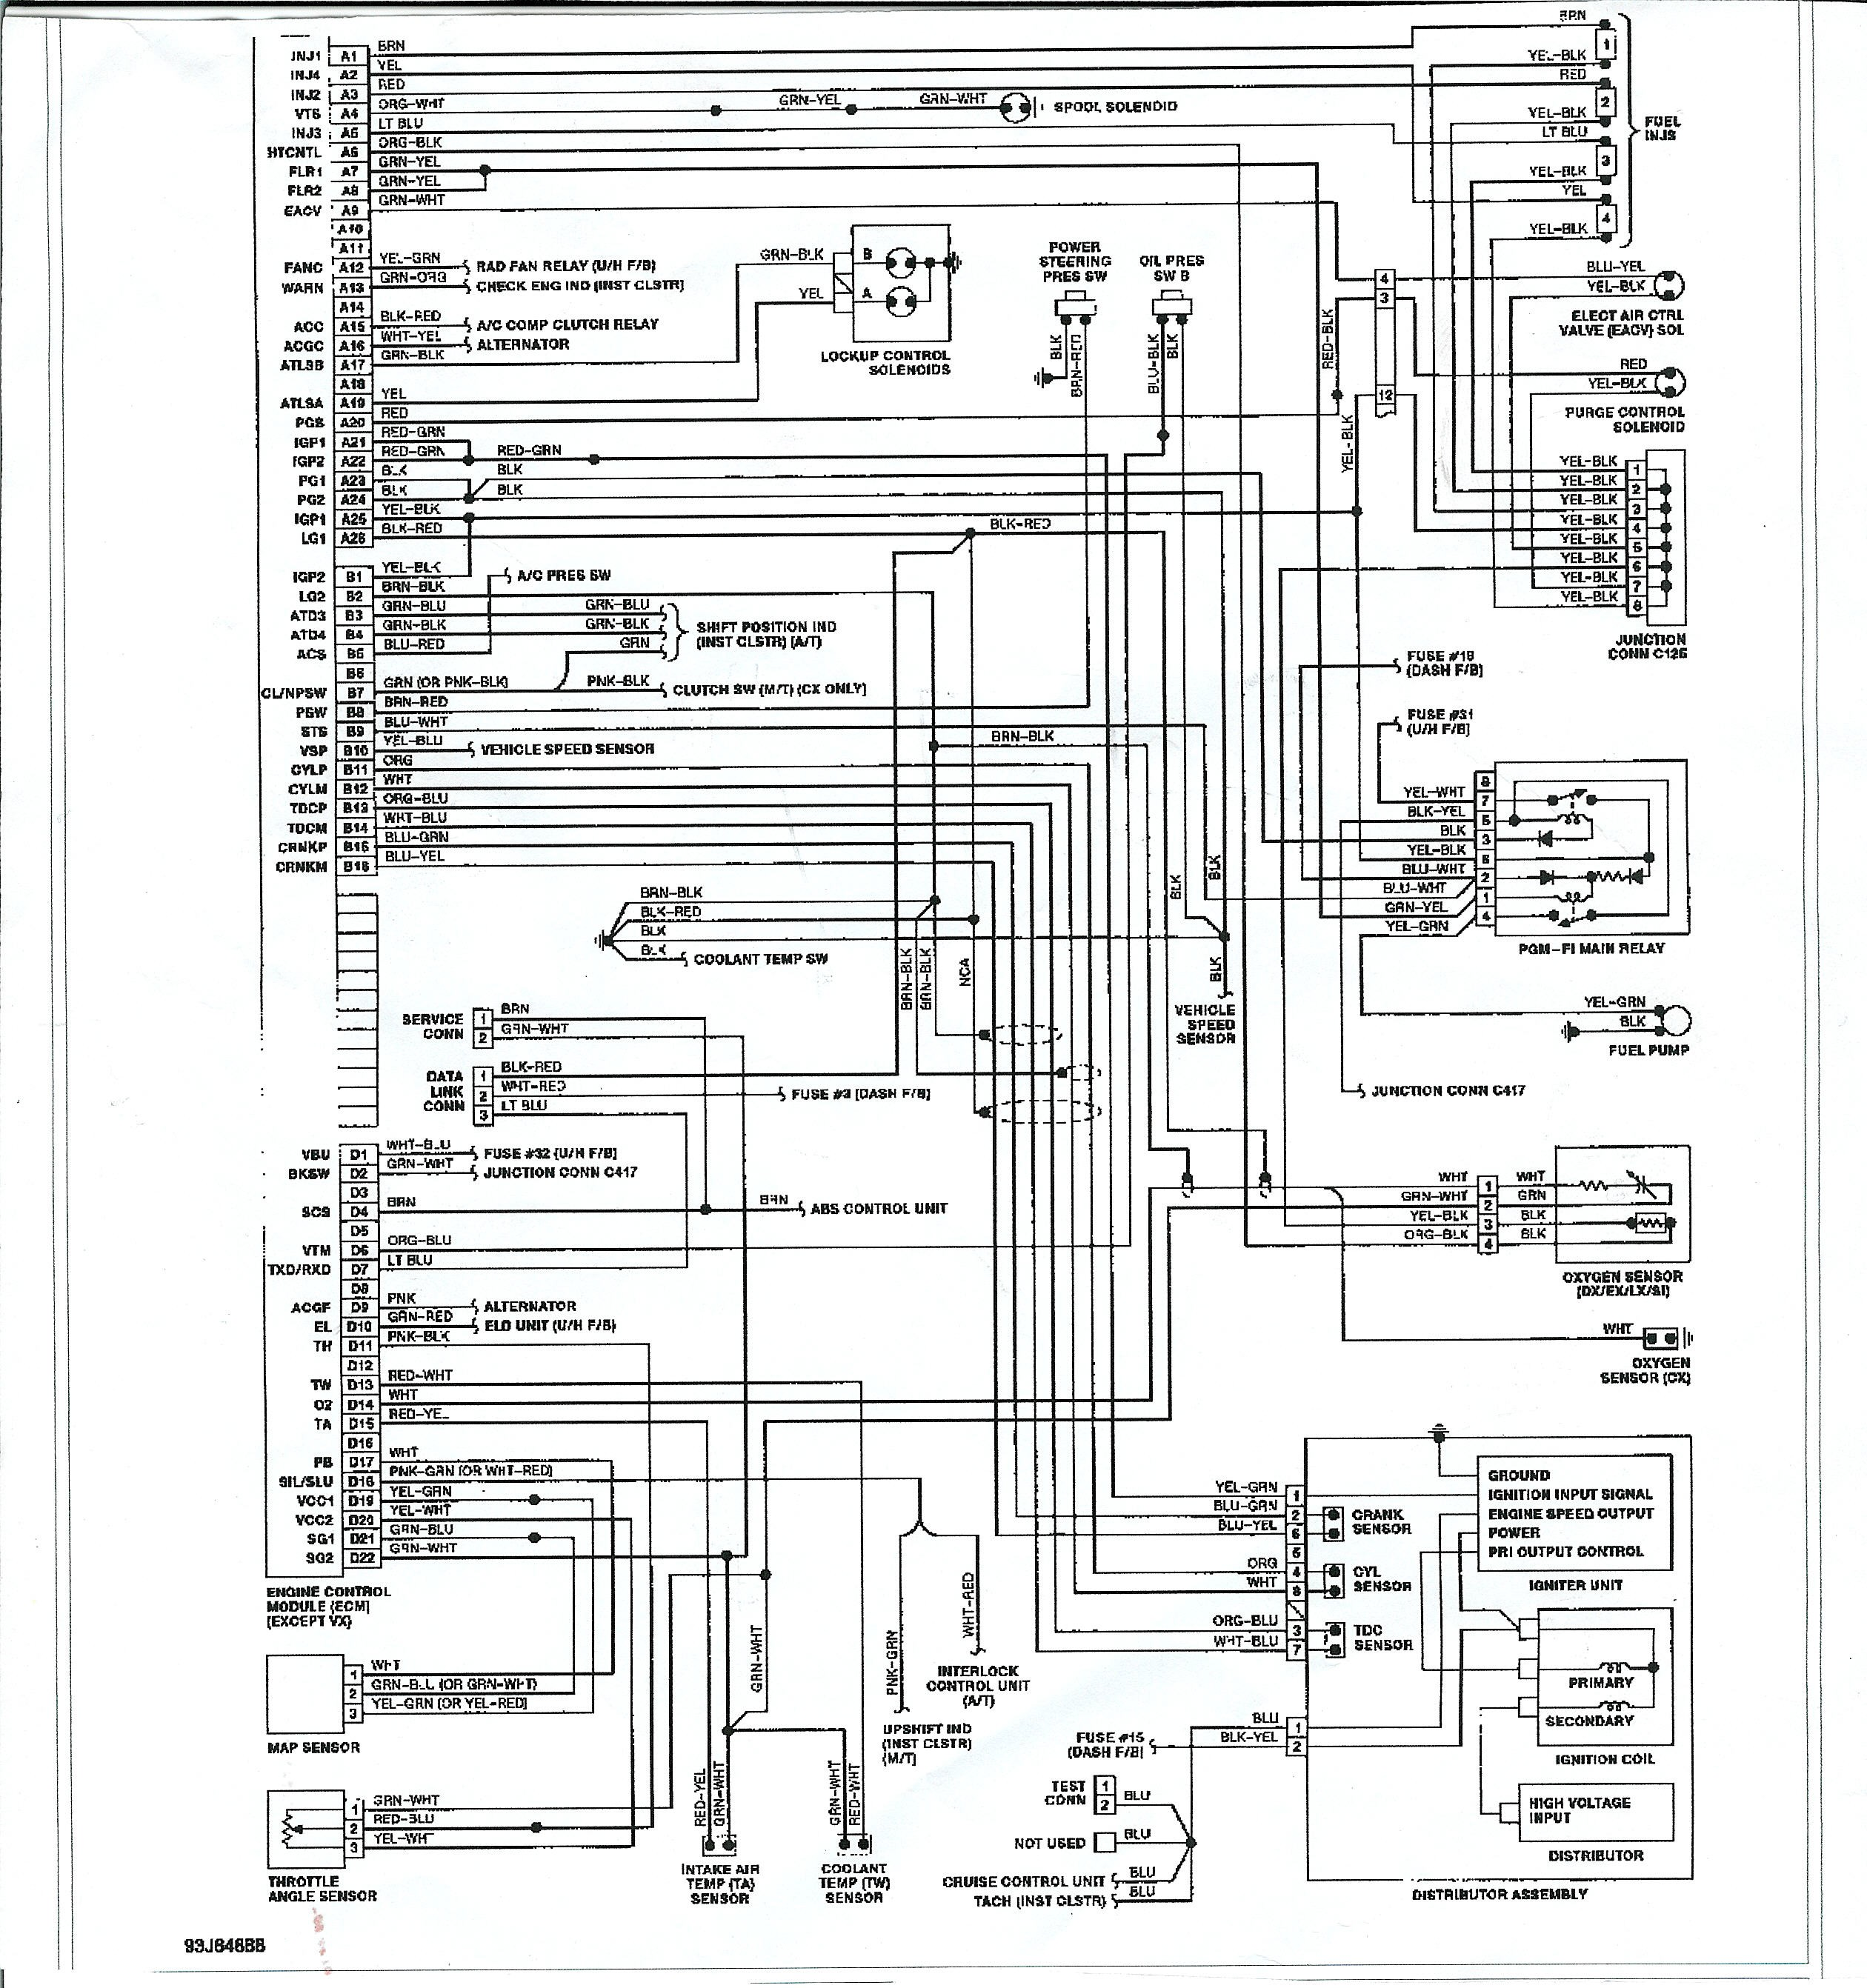 1994 Honda Accord Engine Diagram - Wiring Diagram Schema